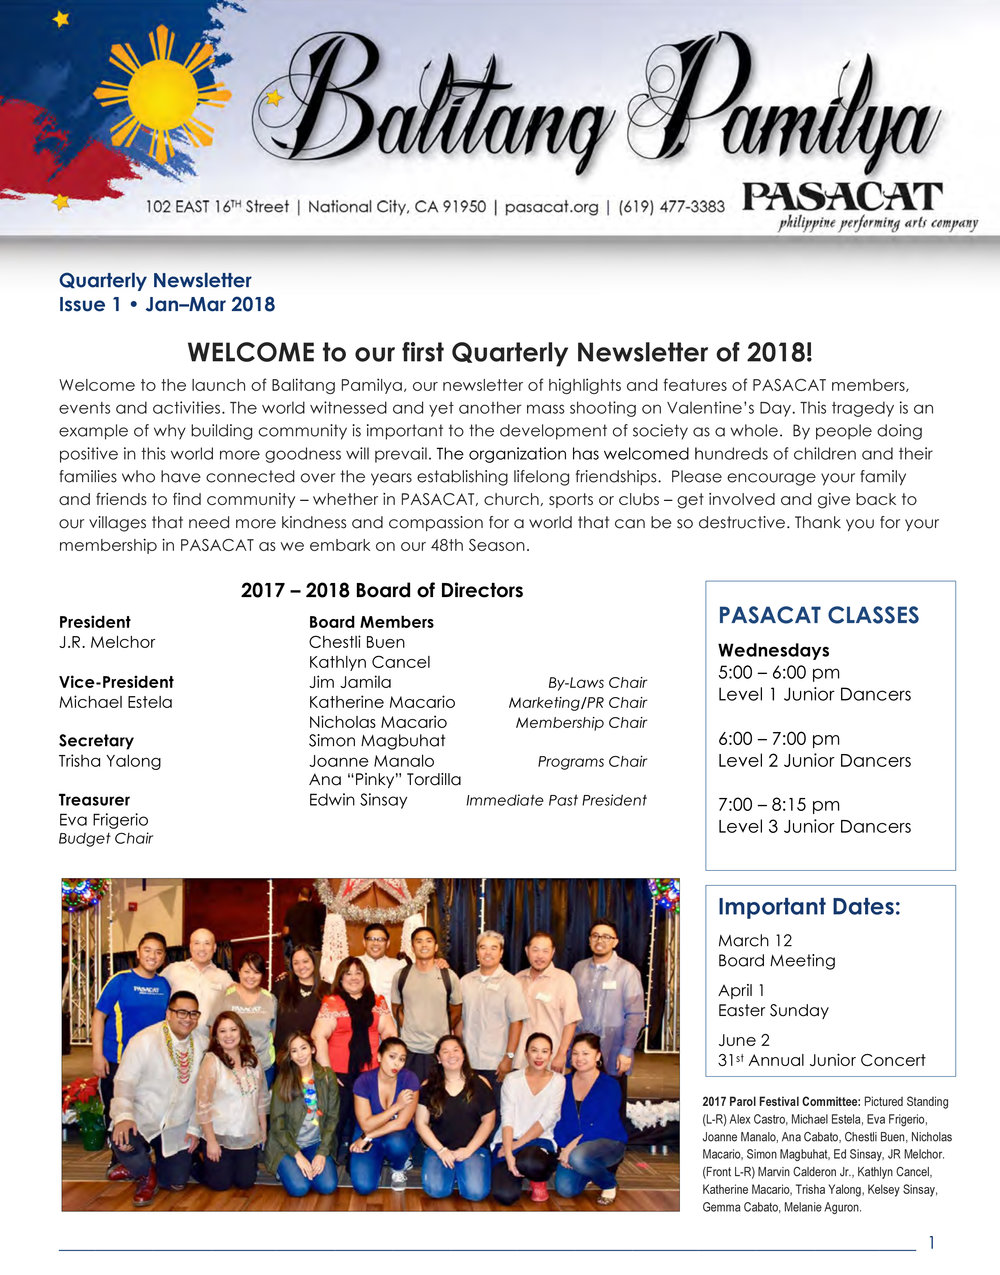 PASACAT_Newsletter_Issue1-FINAL copy.jpg